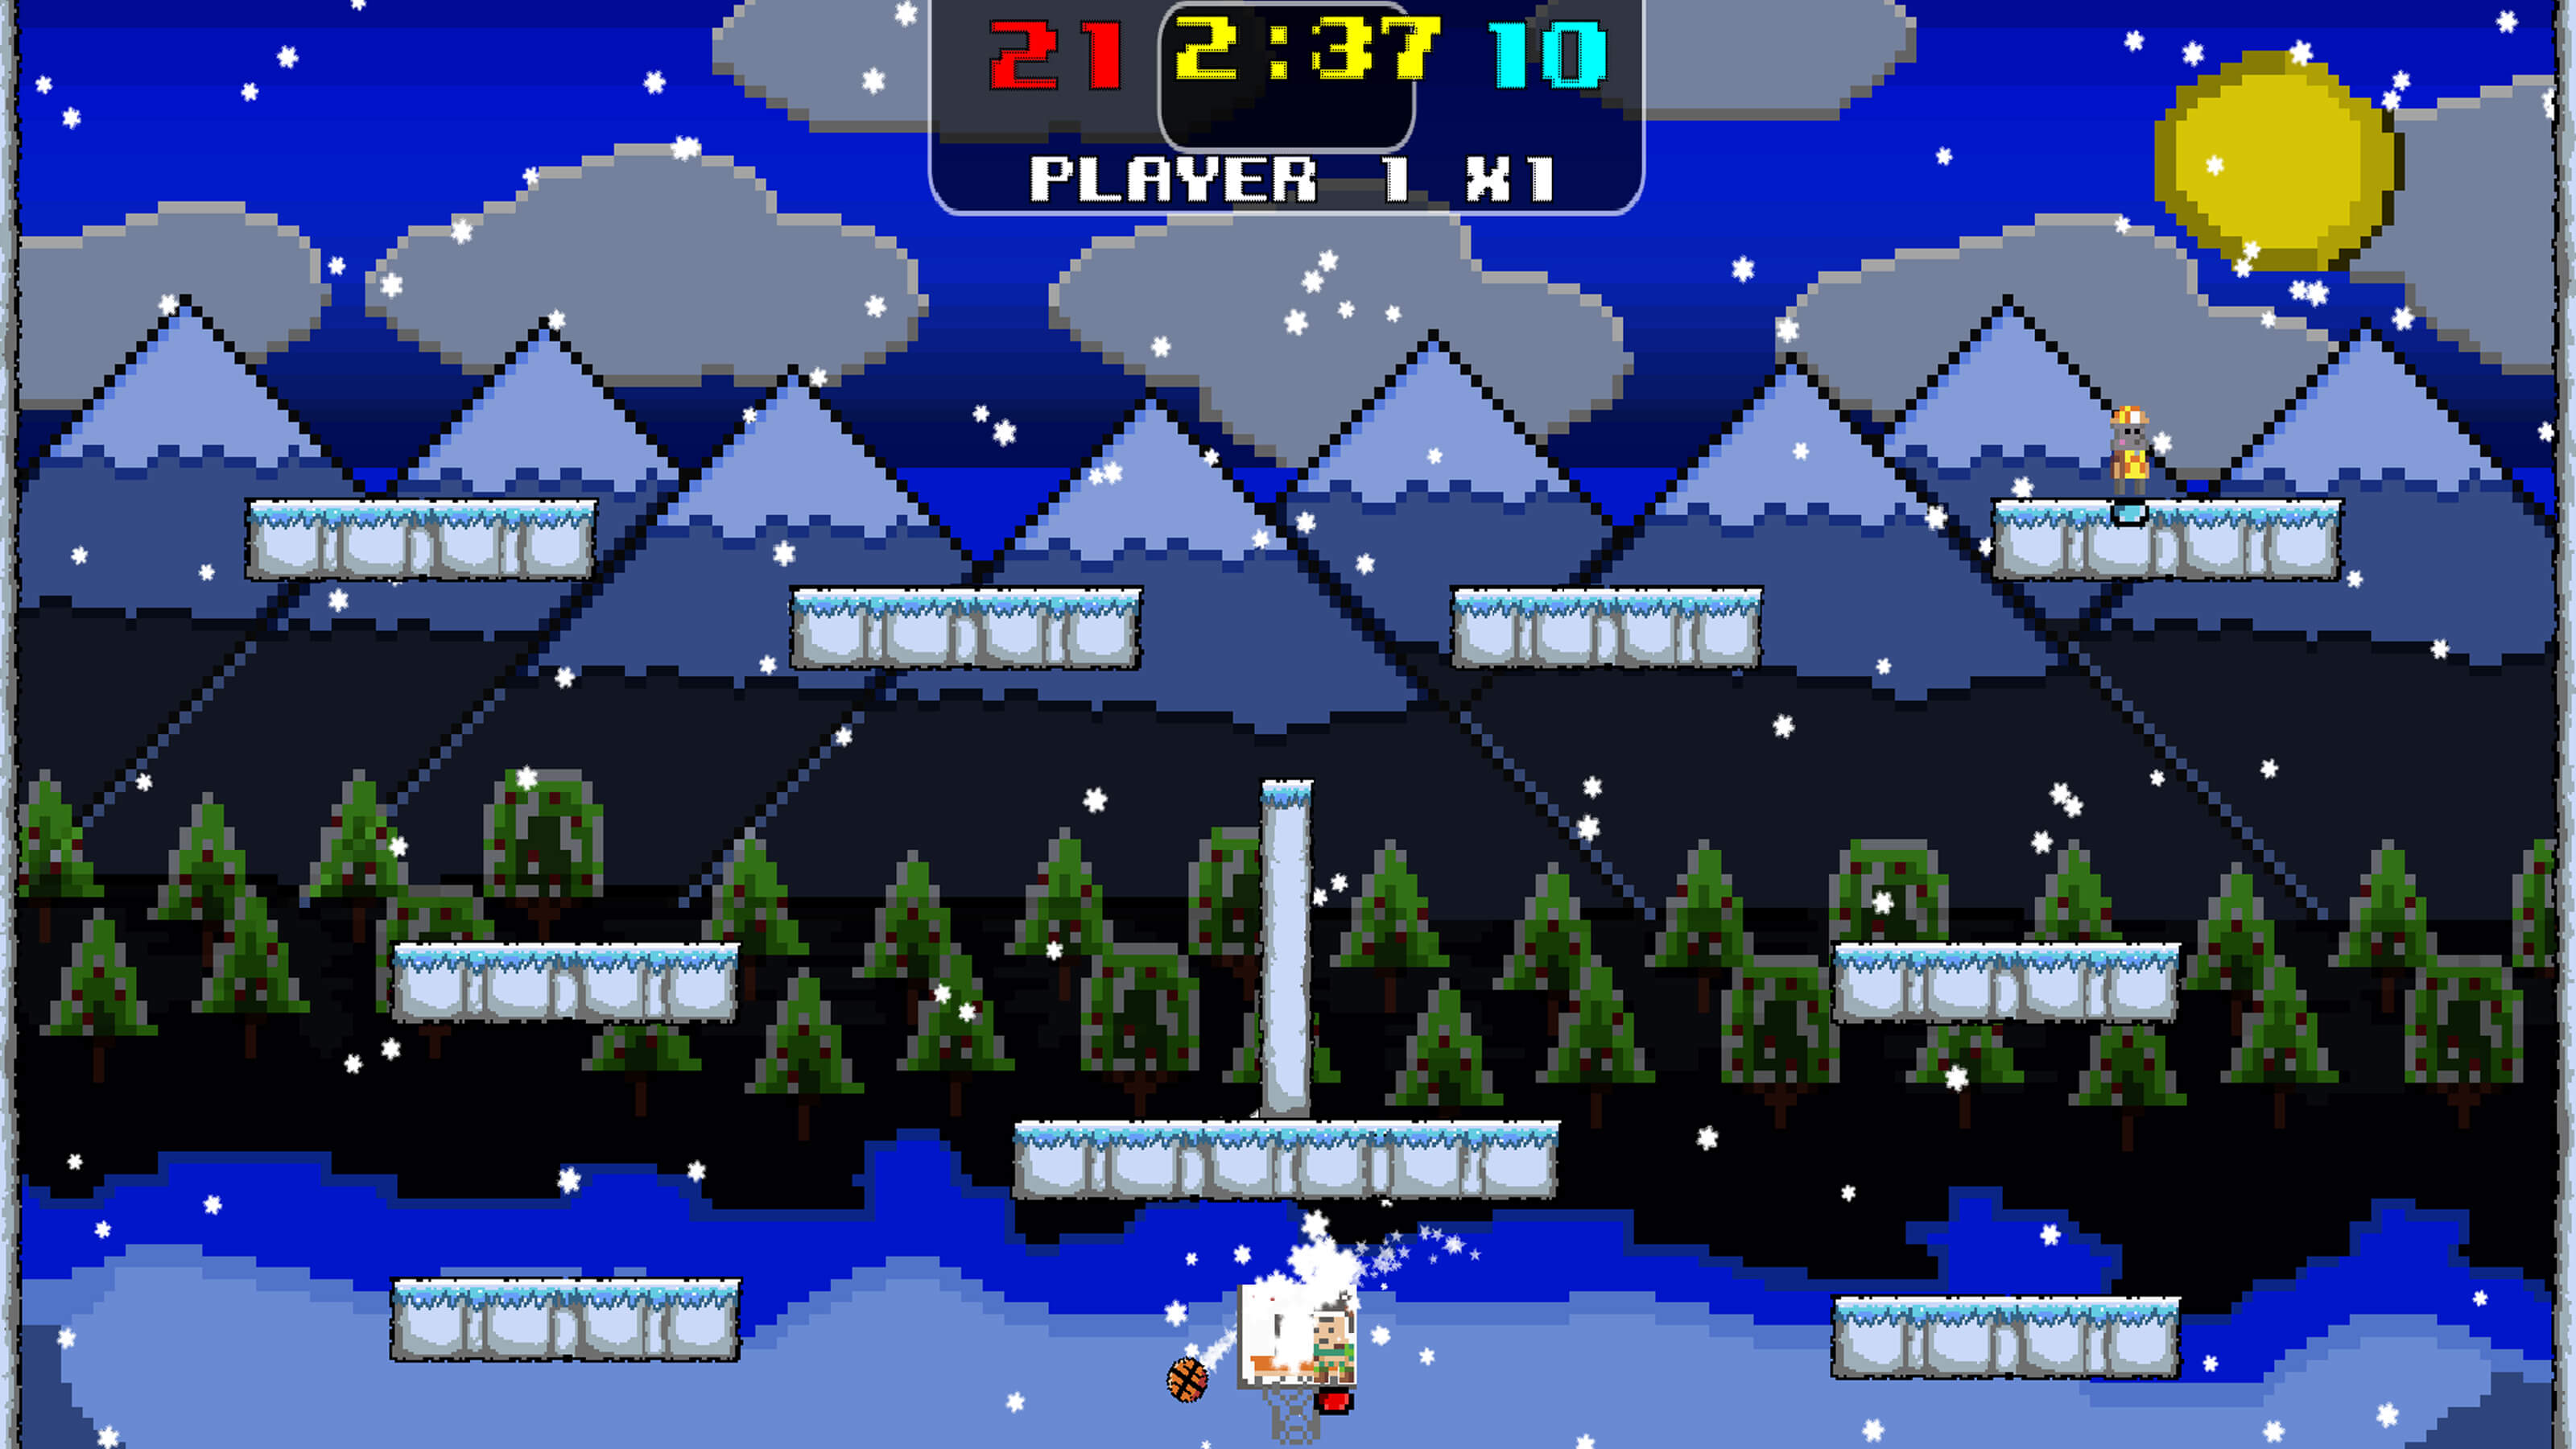 A playable character stands on an icy platform with snow-topped mountains in the background